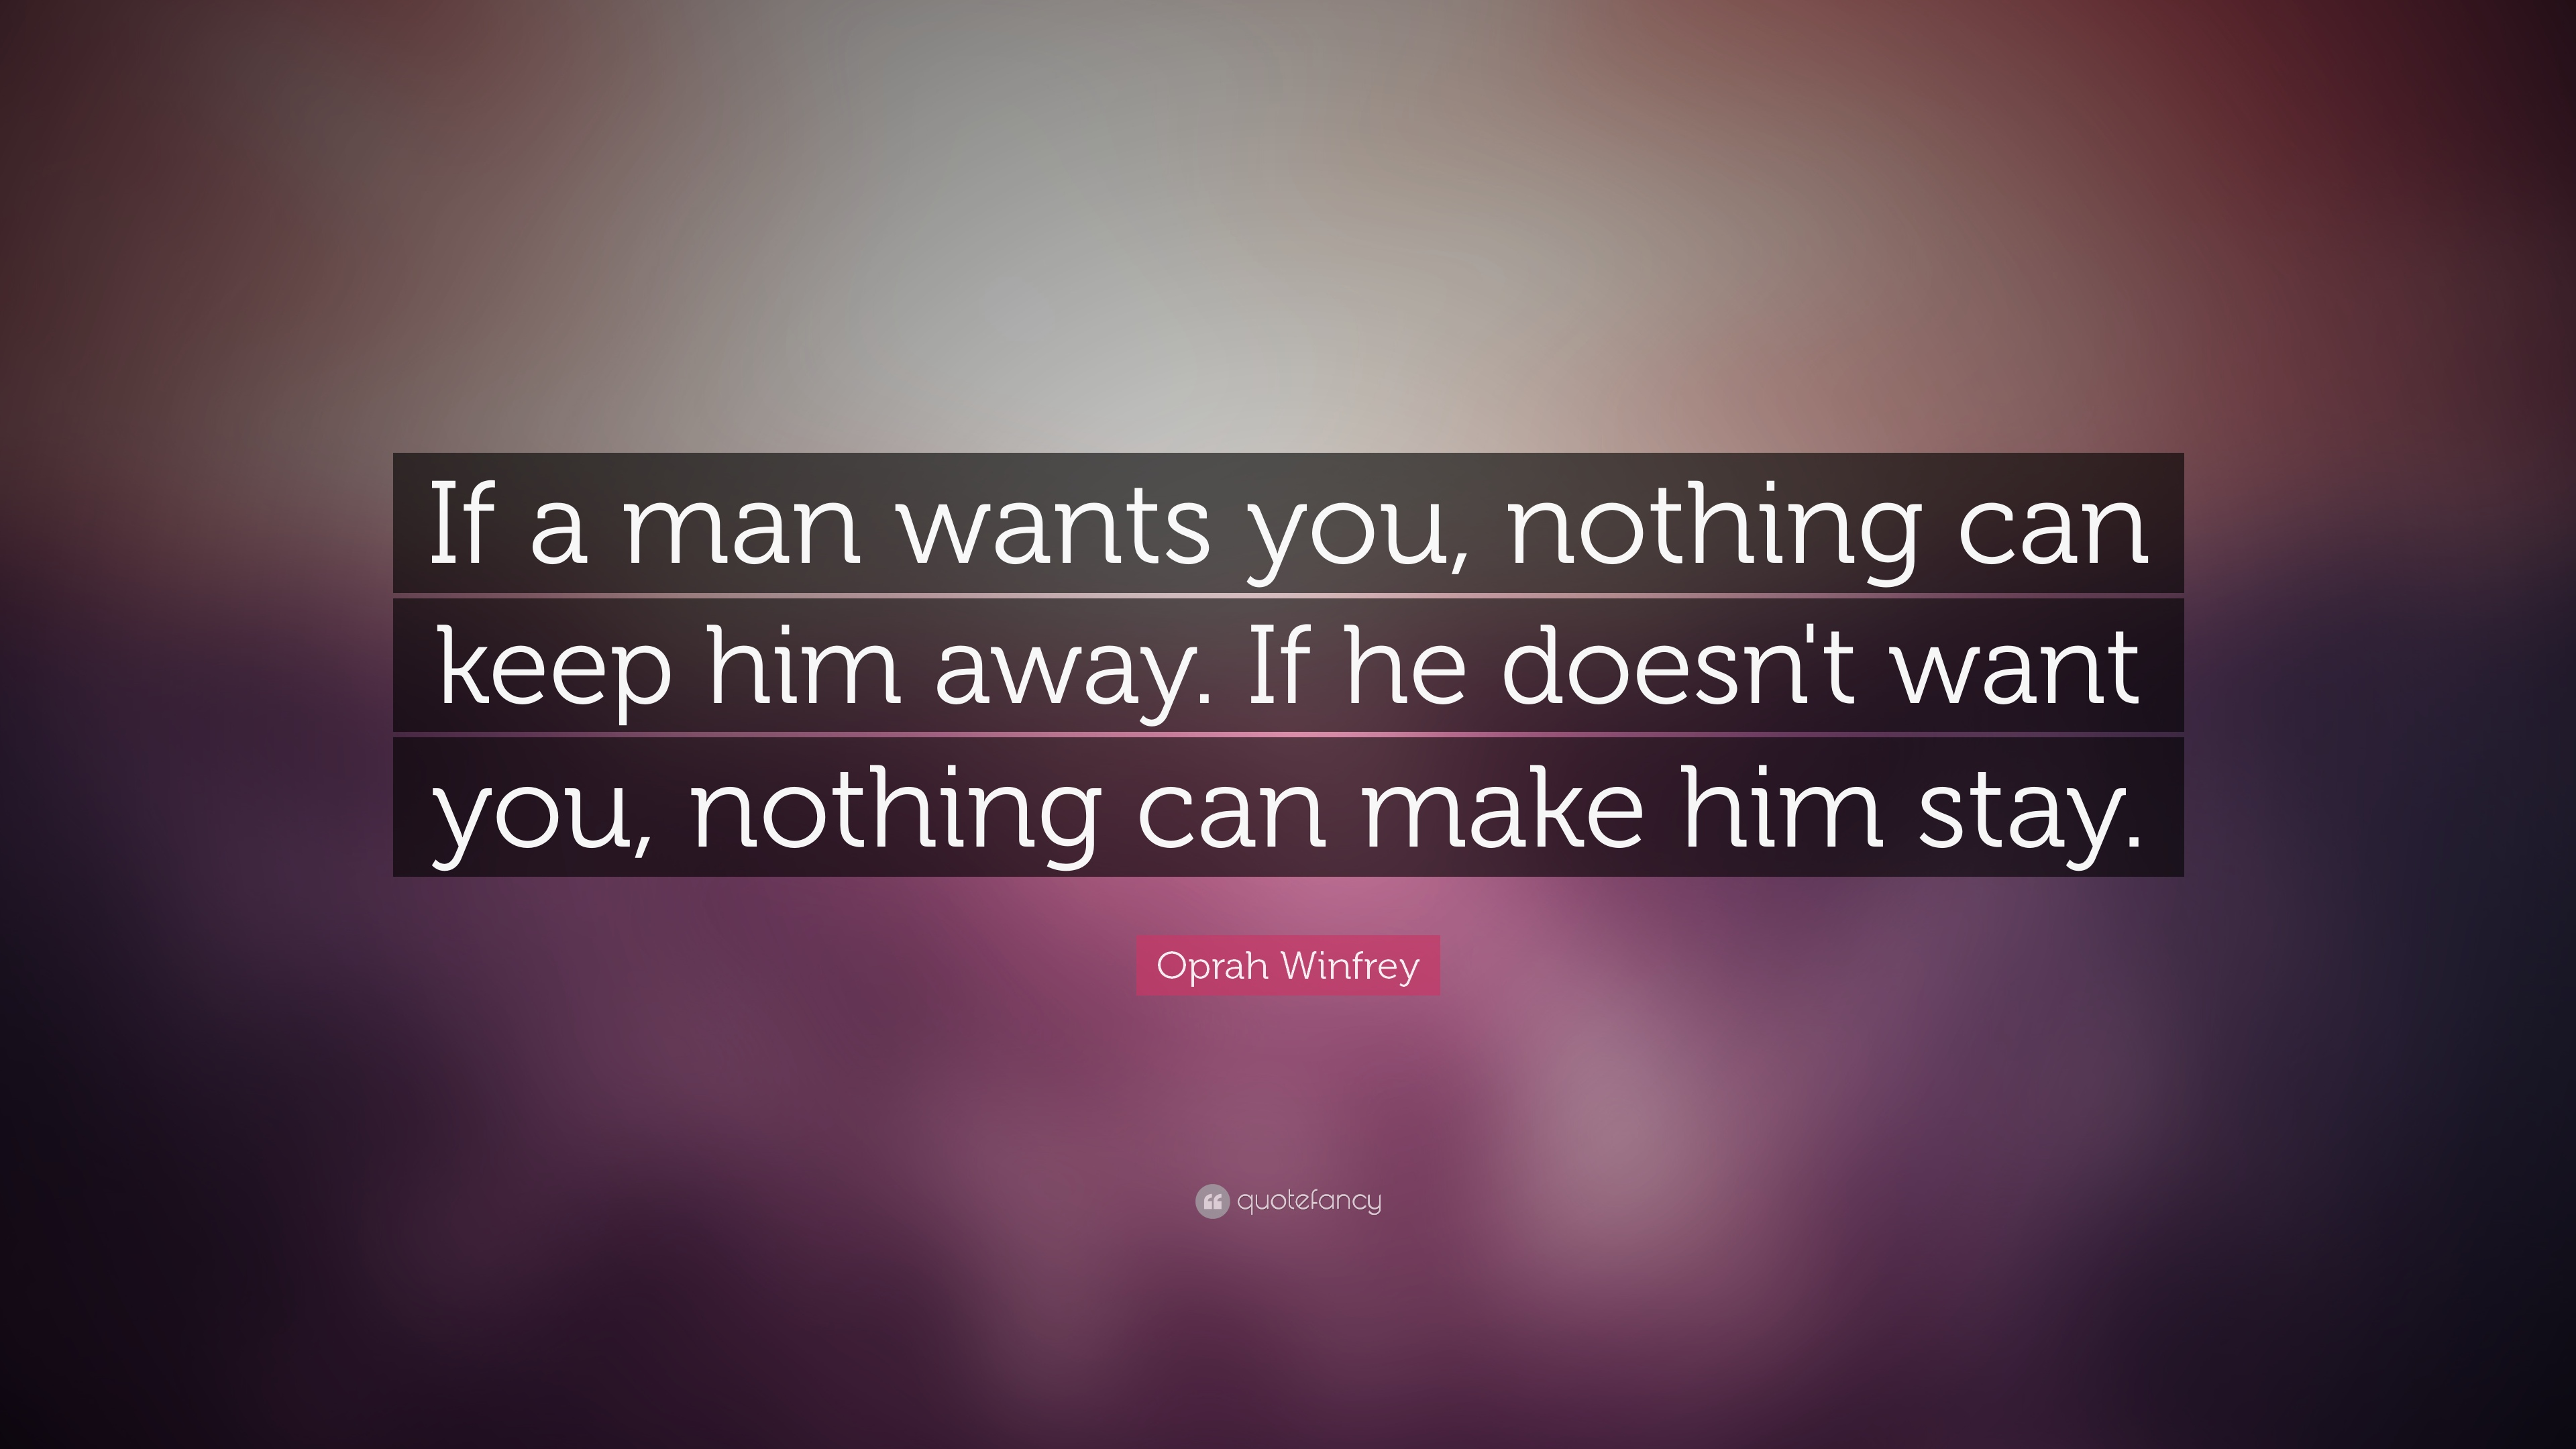 Love Quotes To Keep Him : ... keep him away. If he doesnt want you, nothing can make him stay